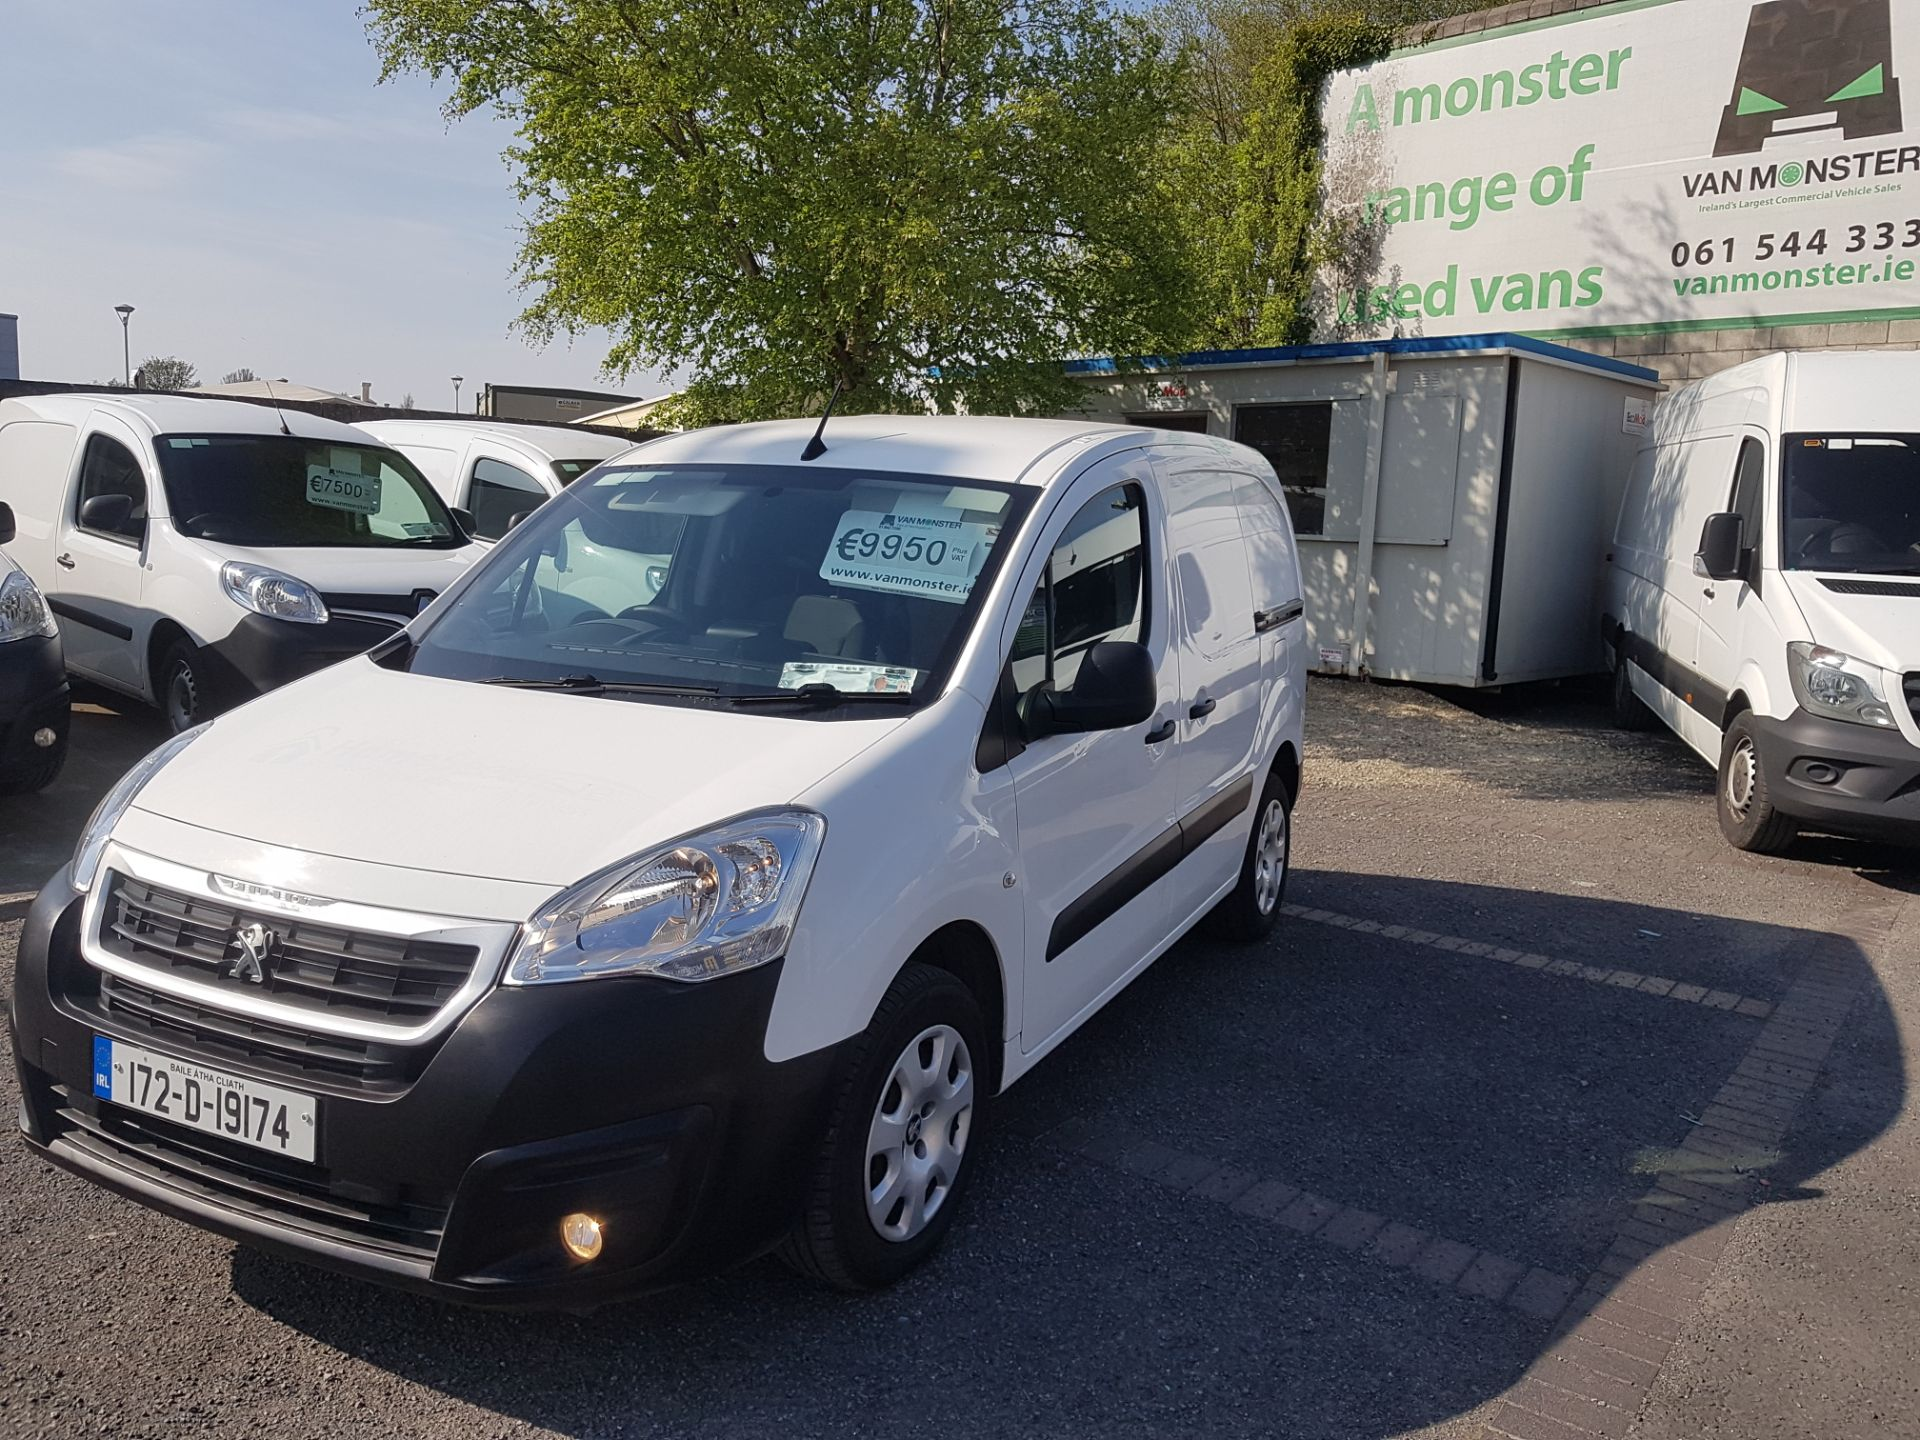 2017 Peugeot Partner Professional 1.6 Blue HDI 100 (172D19174) Image 7